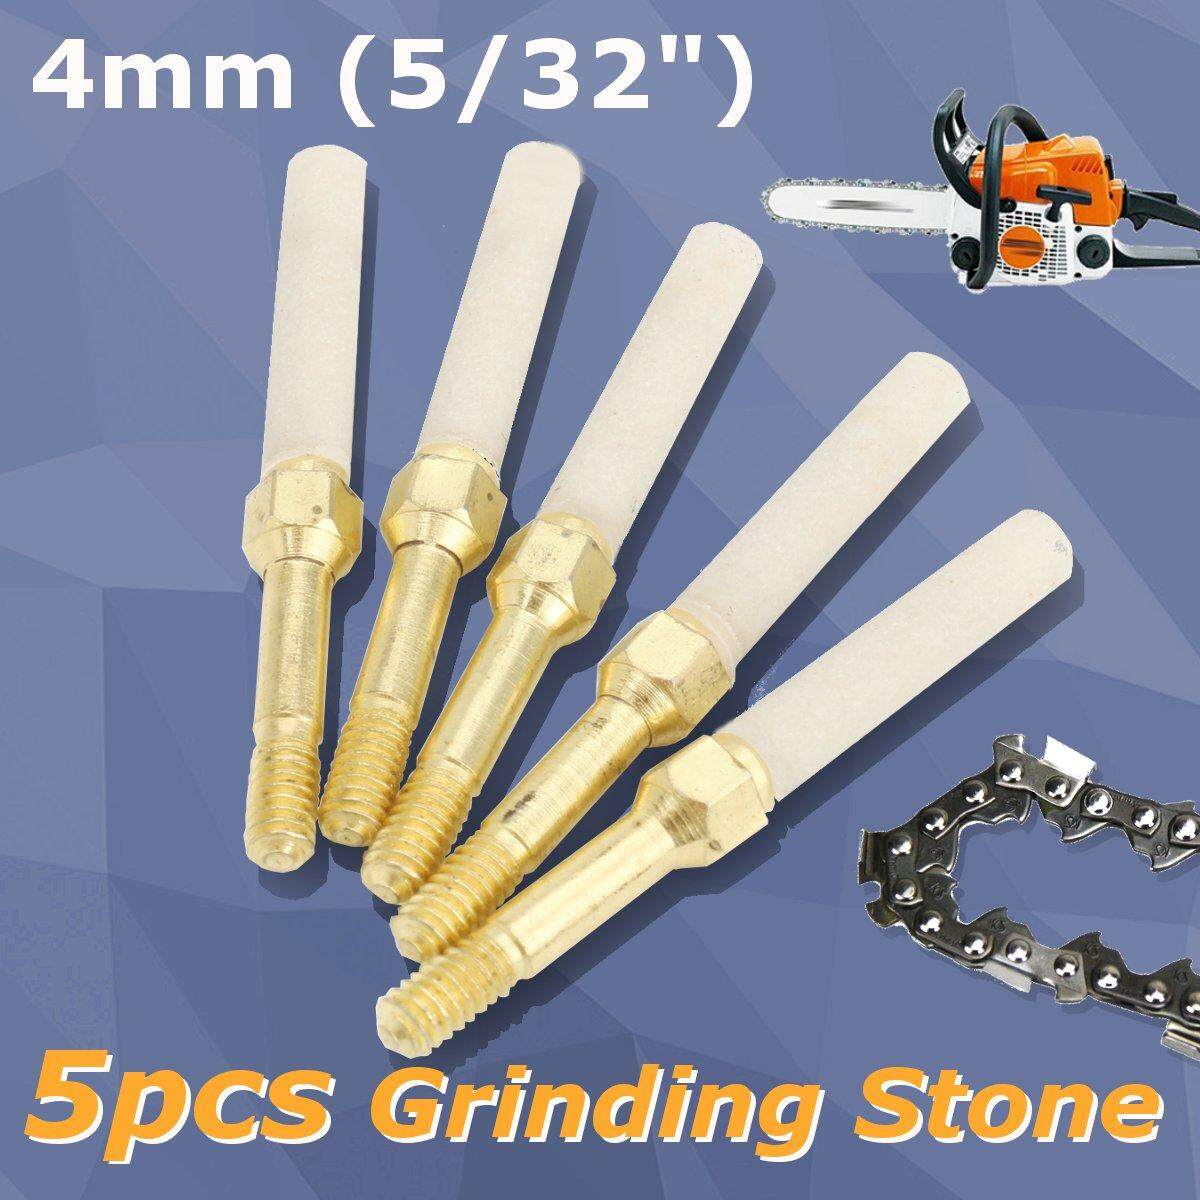 5pcs 5/32 Diamond Chainsaw Sharpener Burr Stone File for 12V Chainsaw Ginders